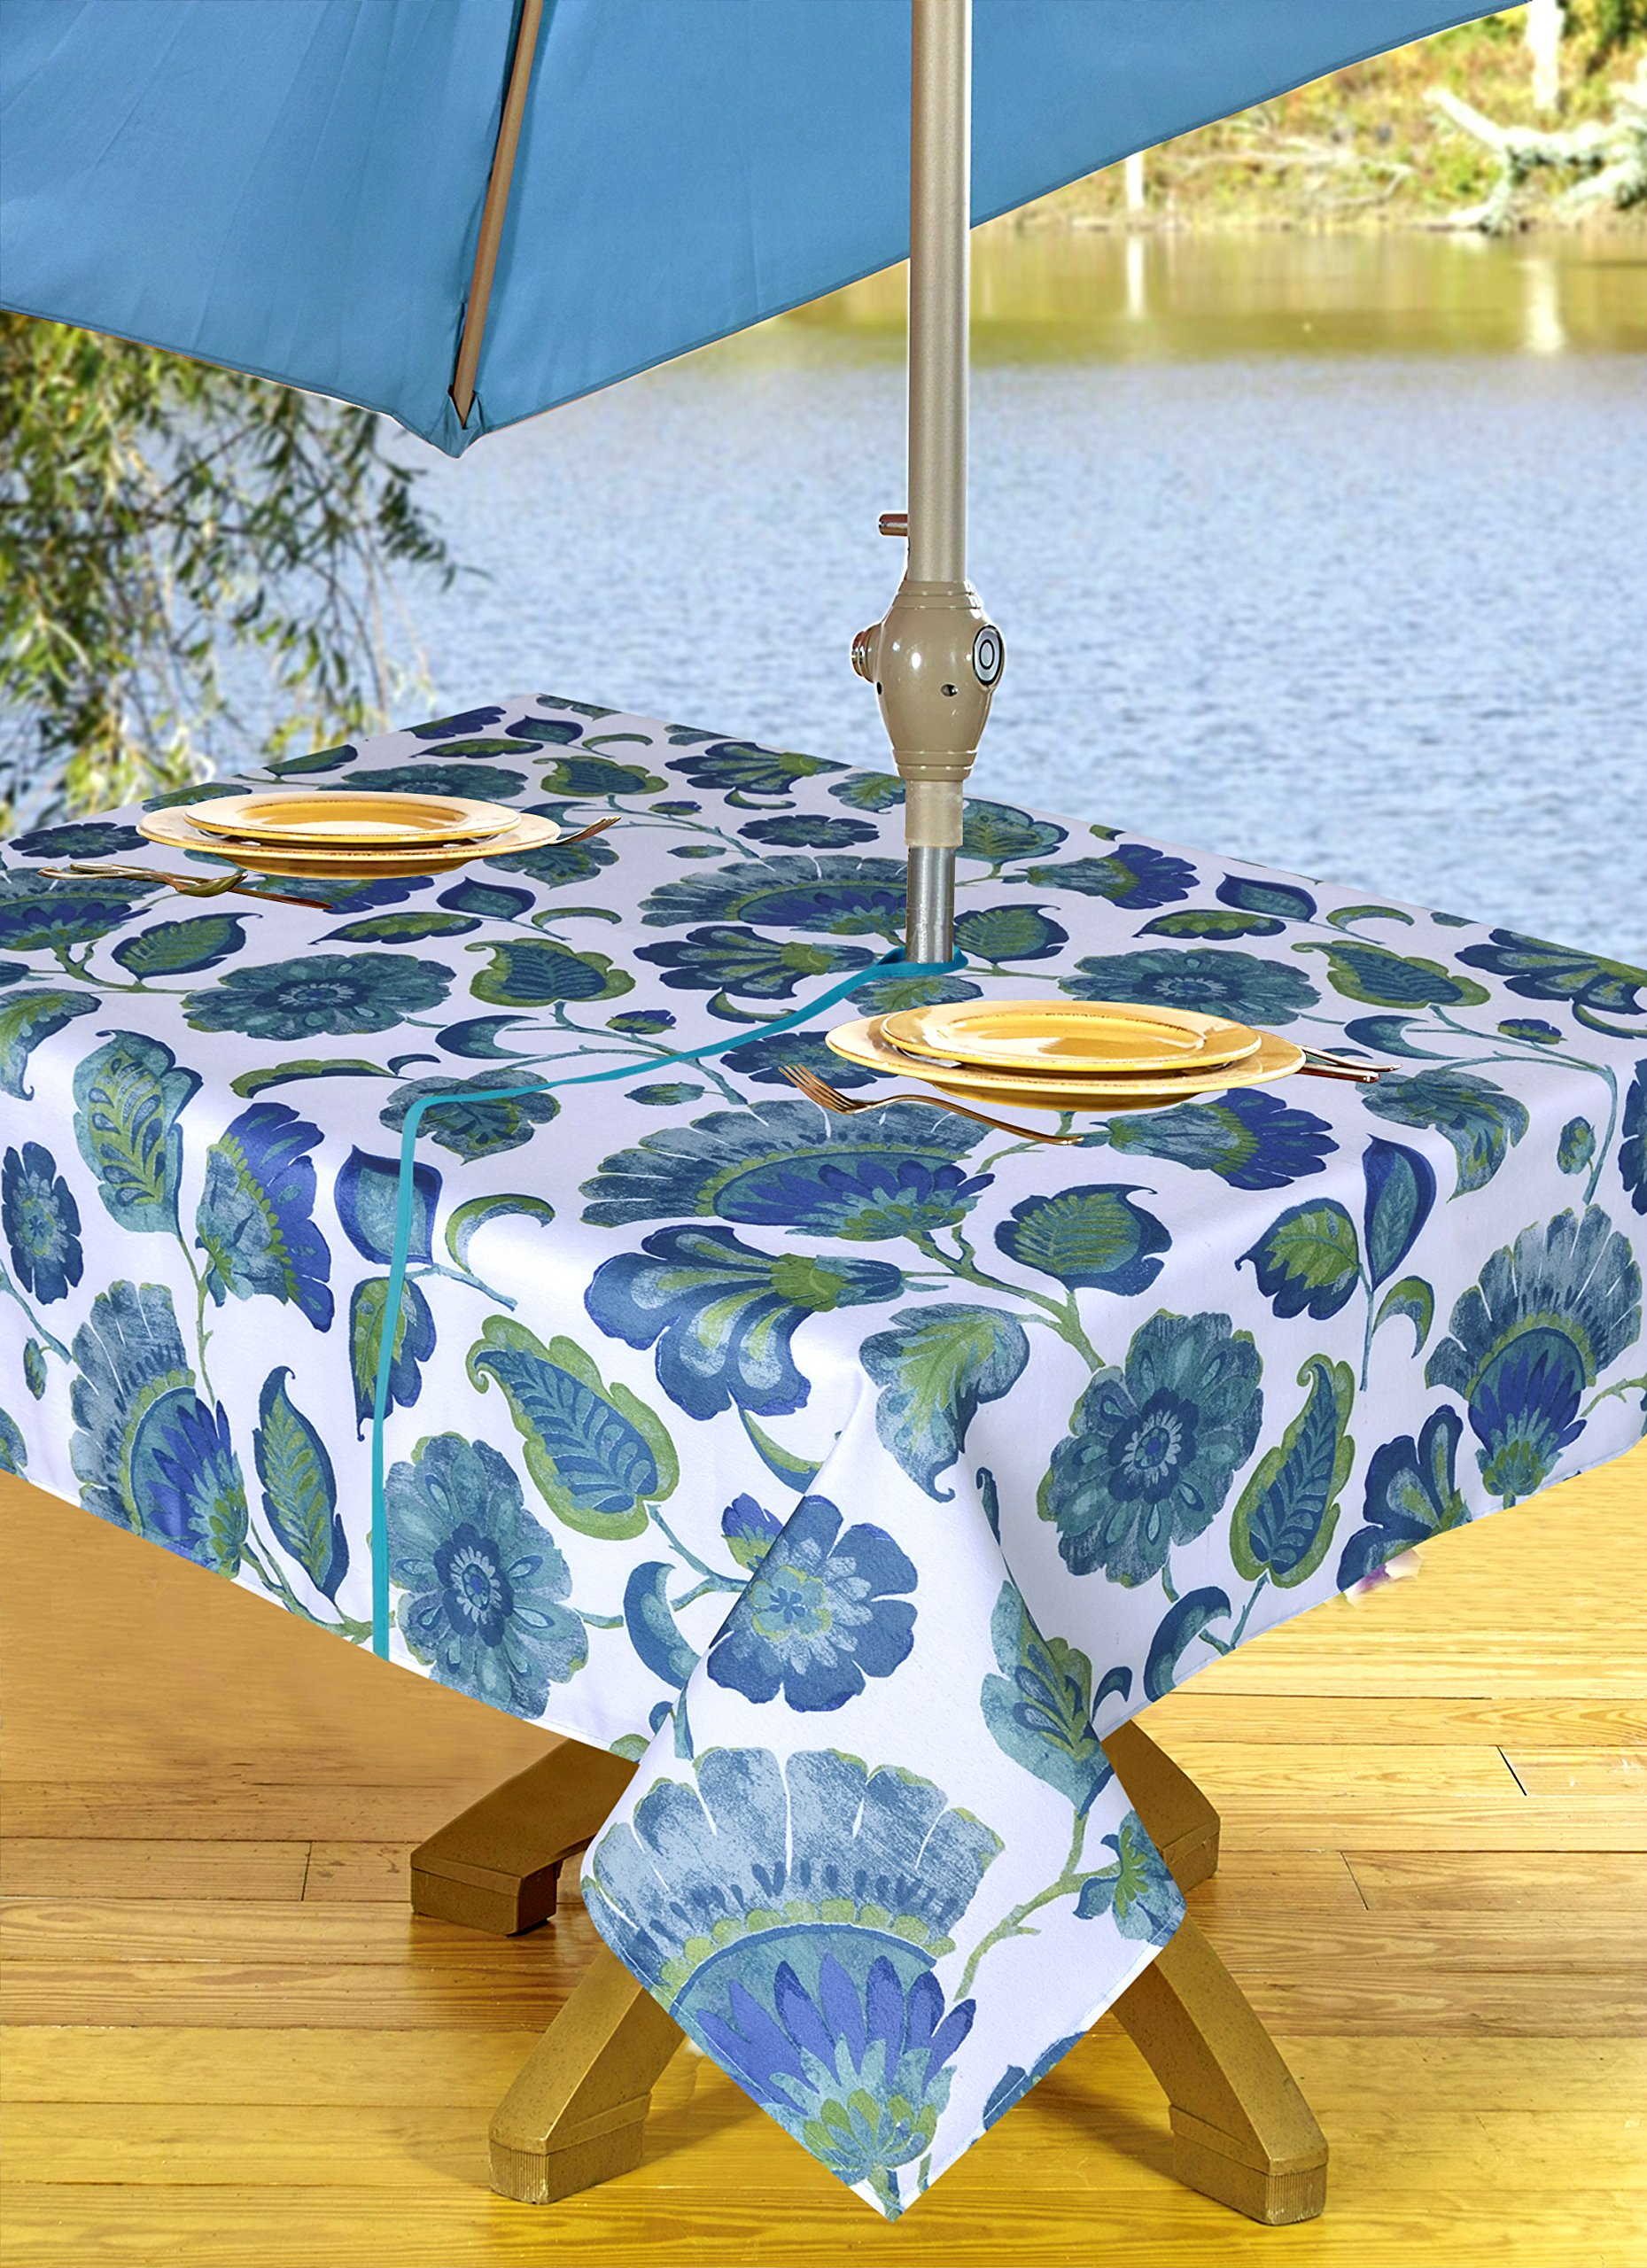 Get Quotations High Quality Outdoor Tablecloths Umbrella Hole With Zipper Patio Tablecloth Stain Resistant Spill